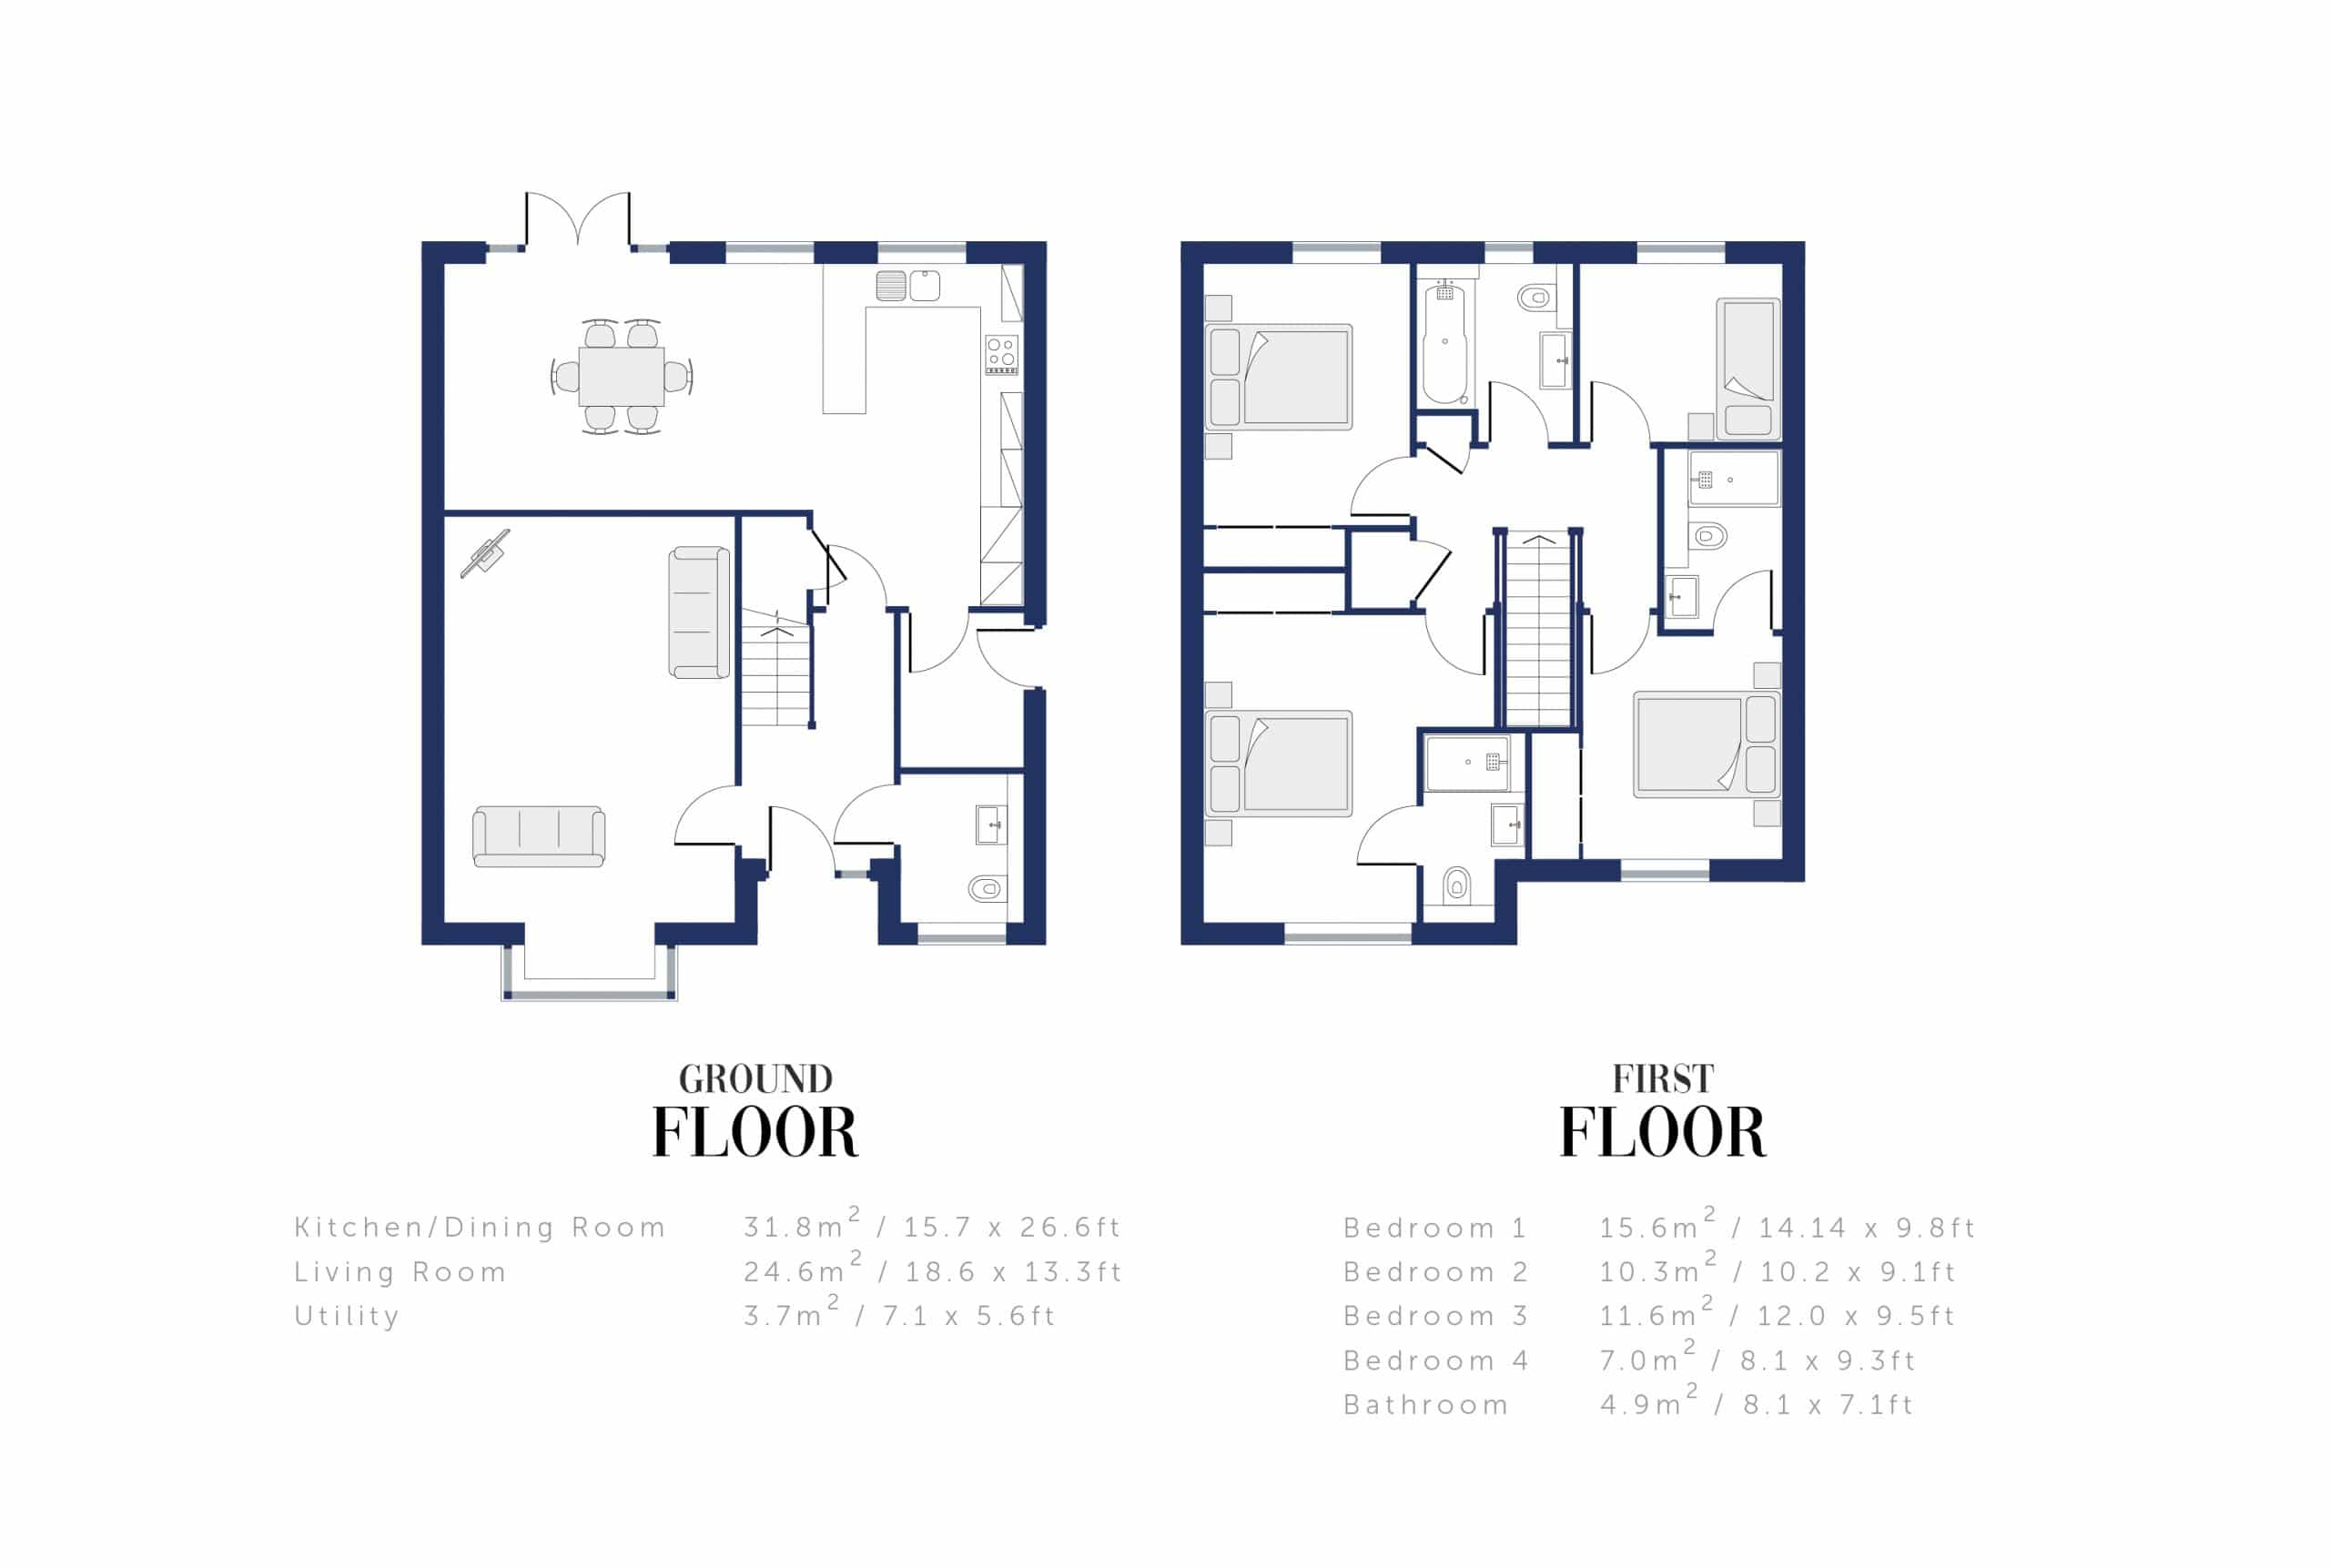 Sunningdale Millers Floor Plan and Sizing for WEB8